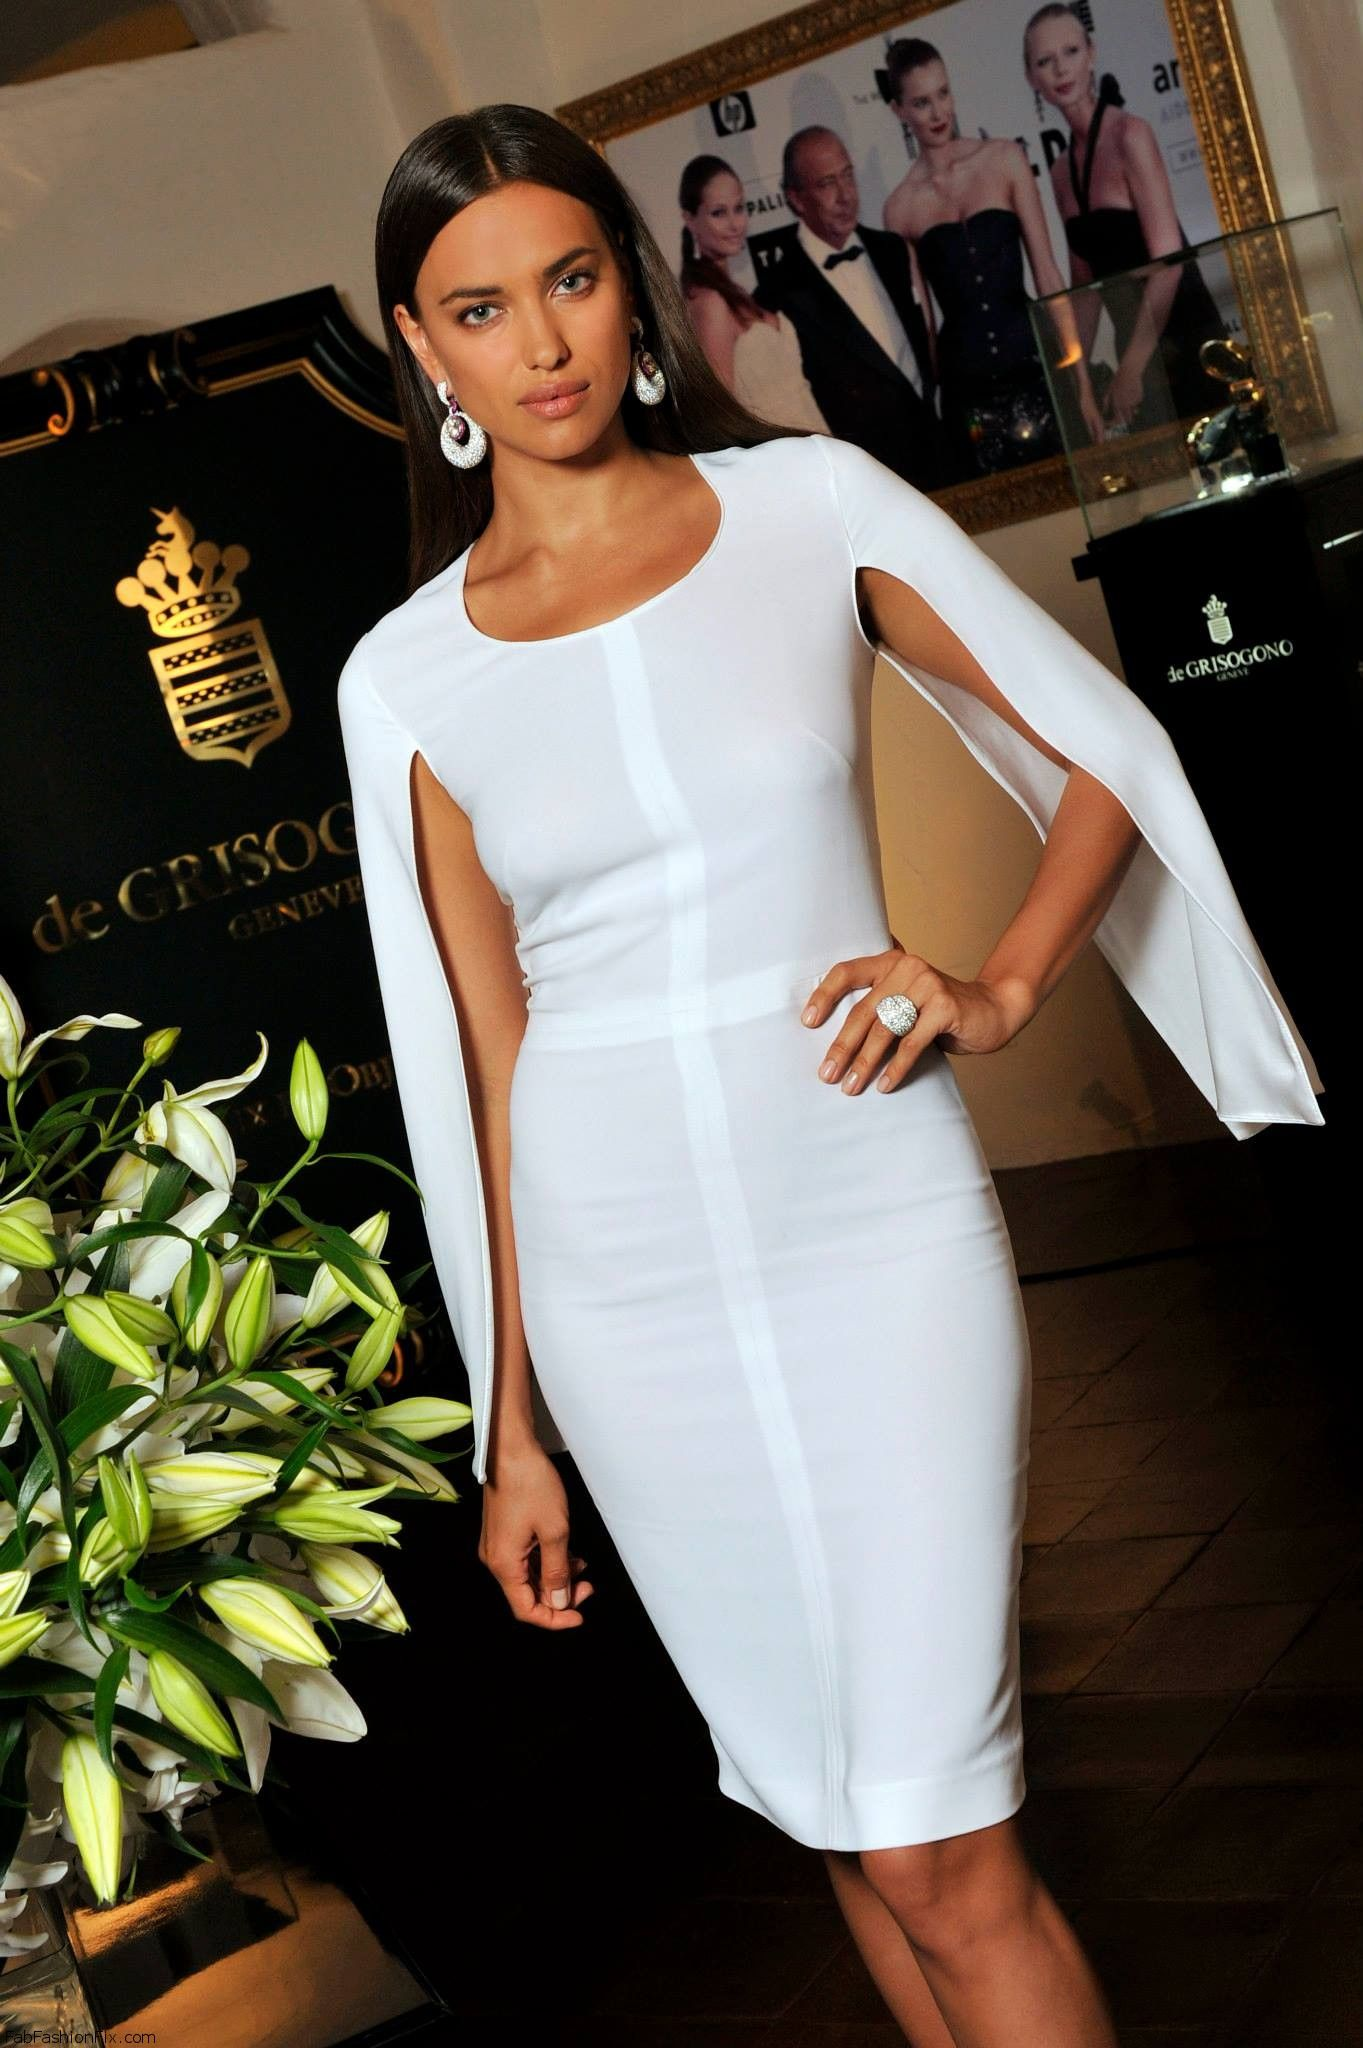 Style Watch: Red Carpet looks #30 | Fab Fashion Fix